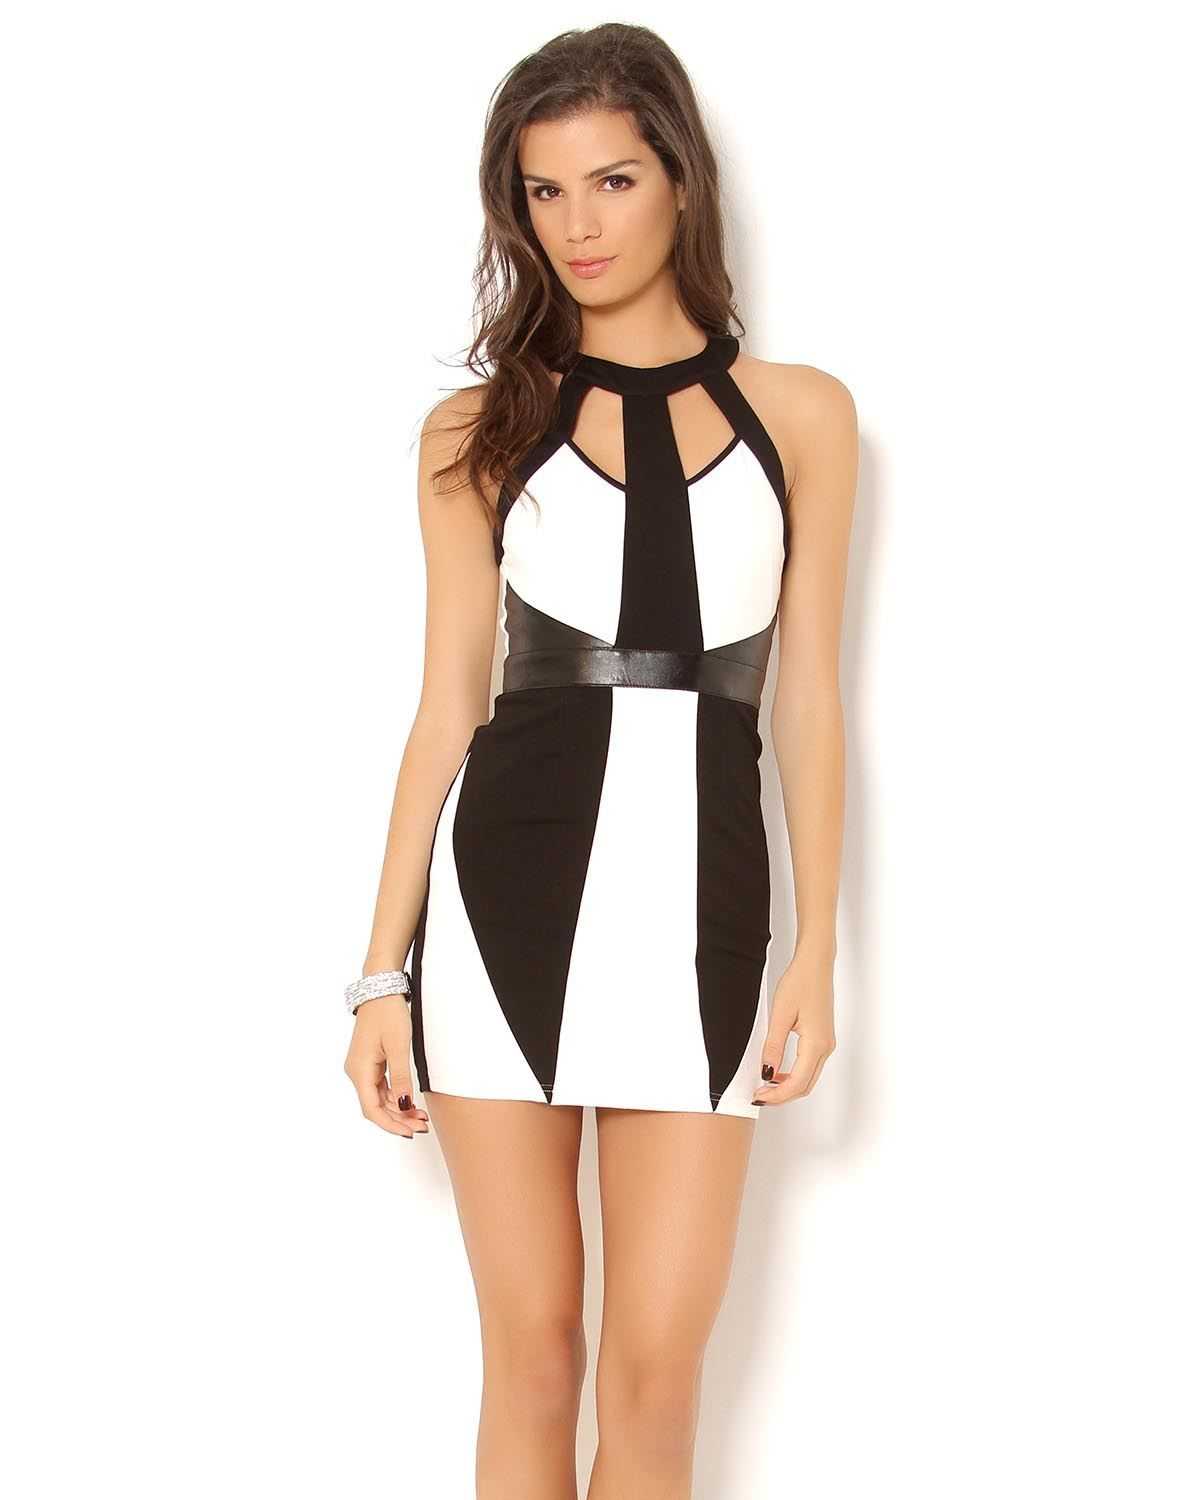 The Clothing Company Dress for $49 at Modnique. Start shopping now and save 57%. Flexible return policy, 24/7 client support, authenticity guaranteed